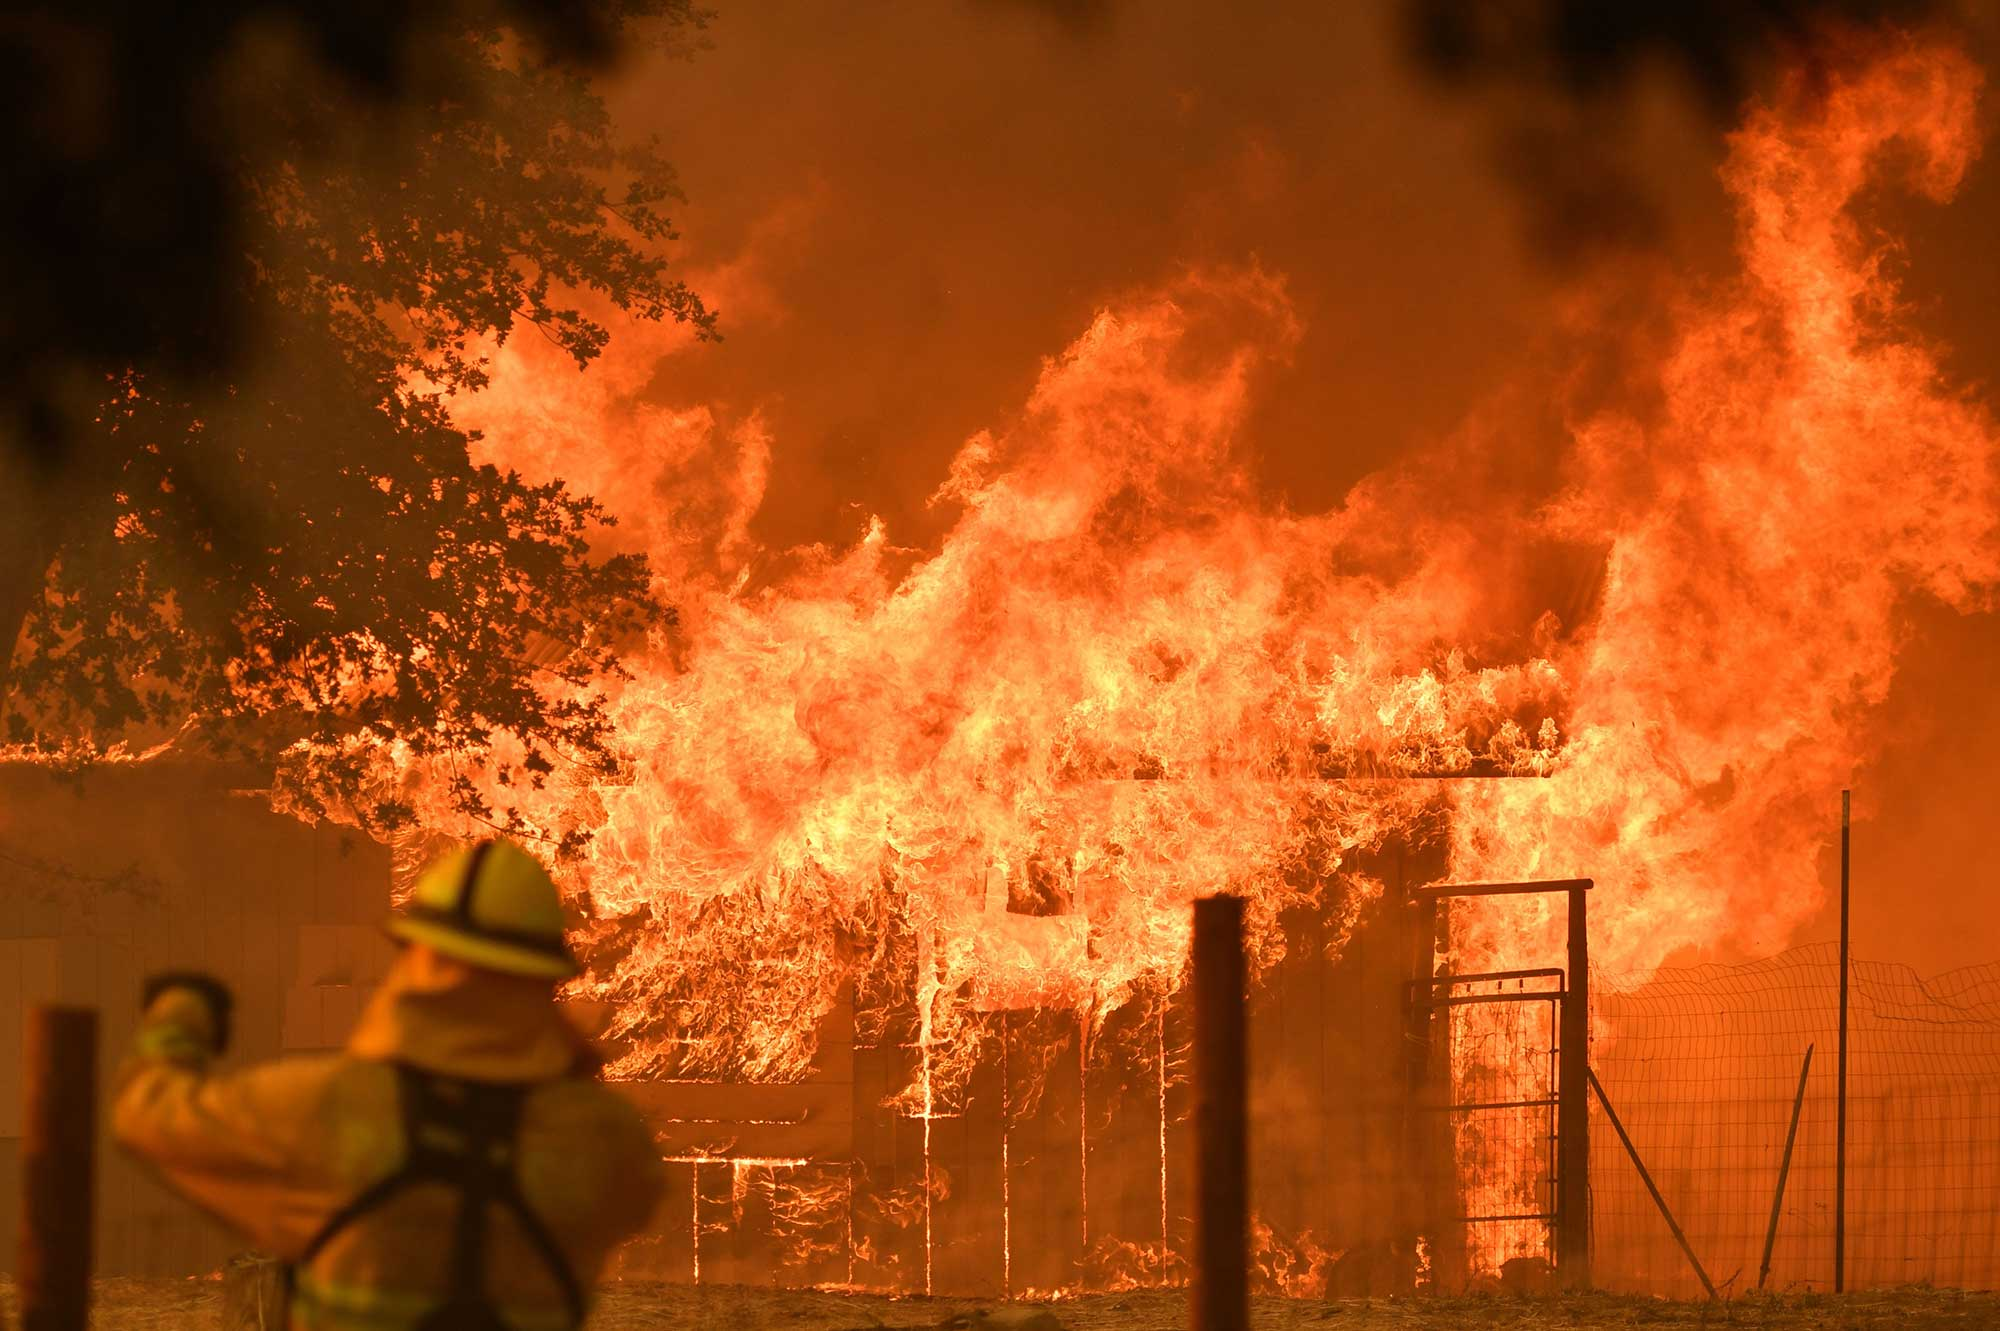 <div class='meta'><div class='origin-logo' data-origin='none'></div><span class='caption-text' data-credit='JOSH EDELSON/AFP/Getty Images'>A firefighter watches as a building burns during the Mendocino Complex fire in Lakeport, California, on July 30, 2018.</span></div>